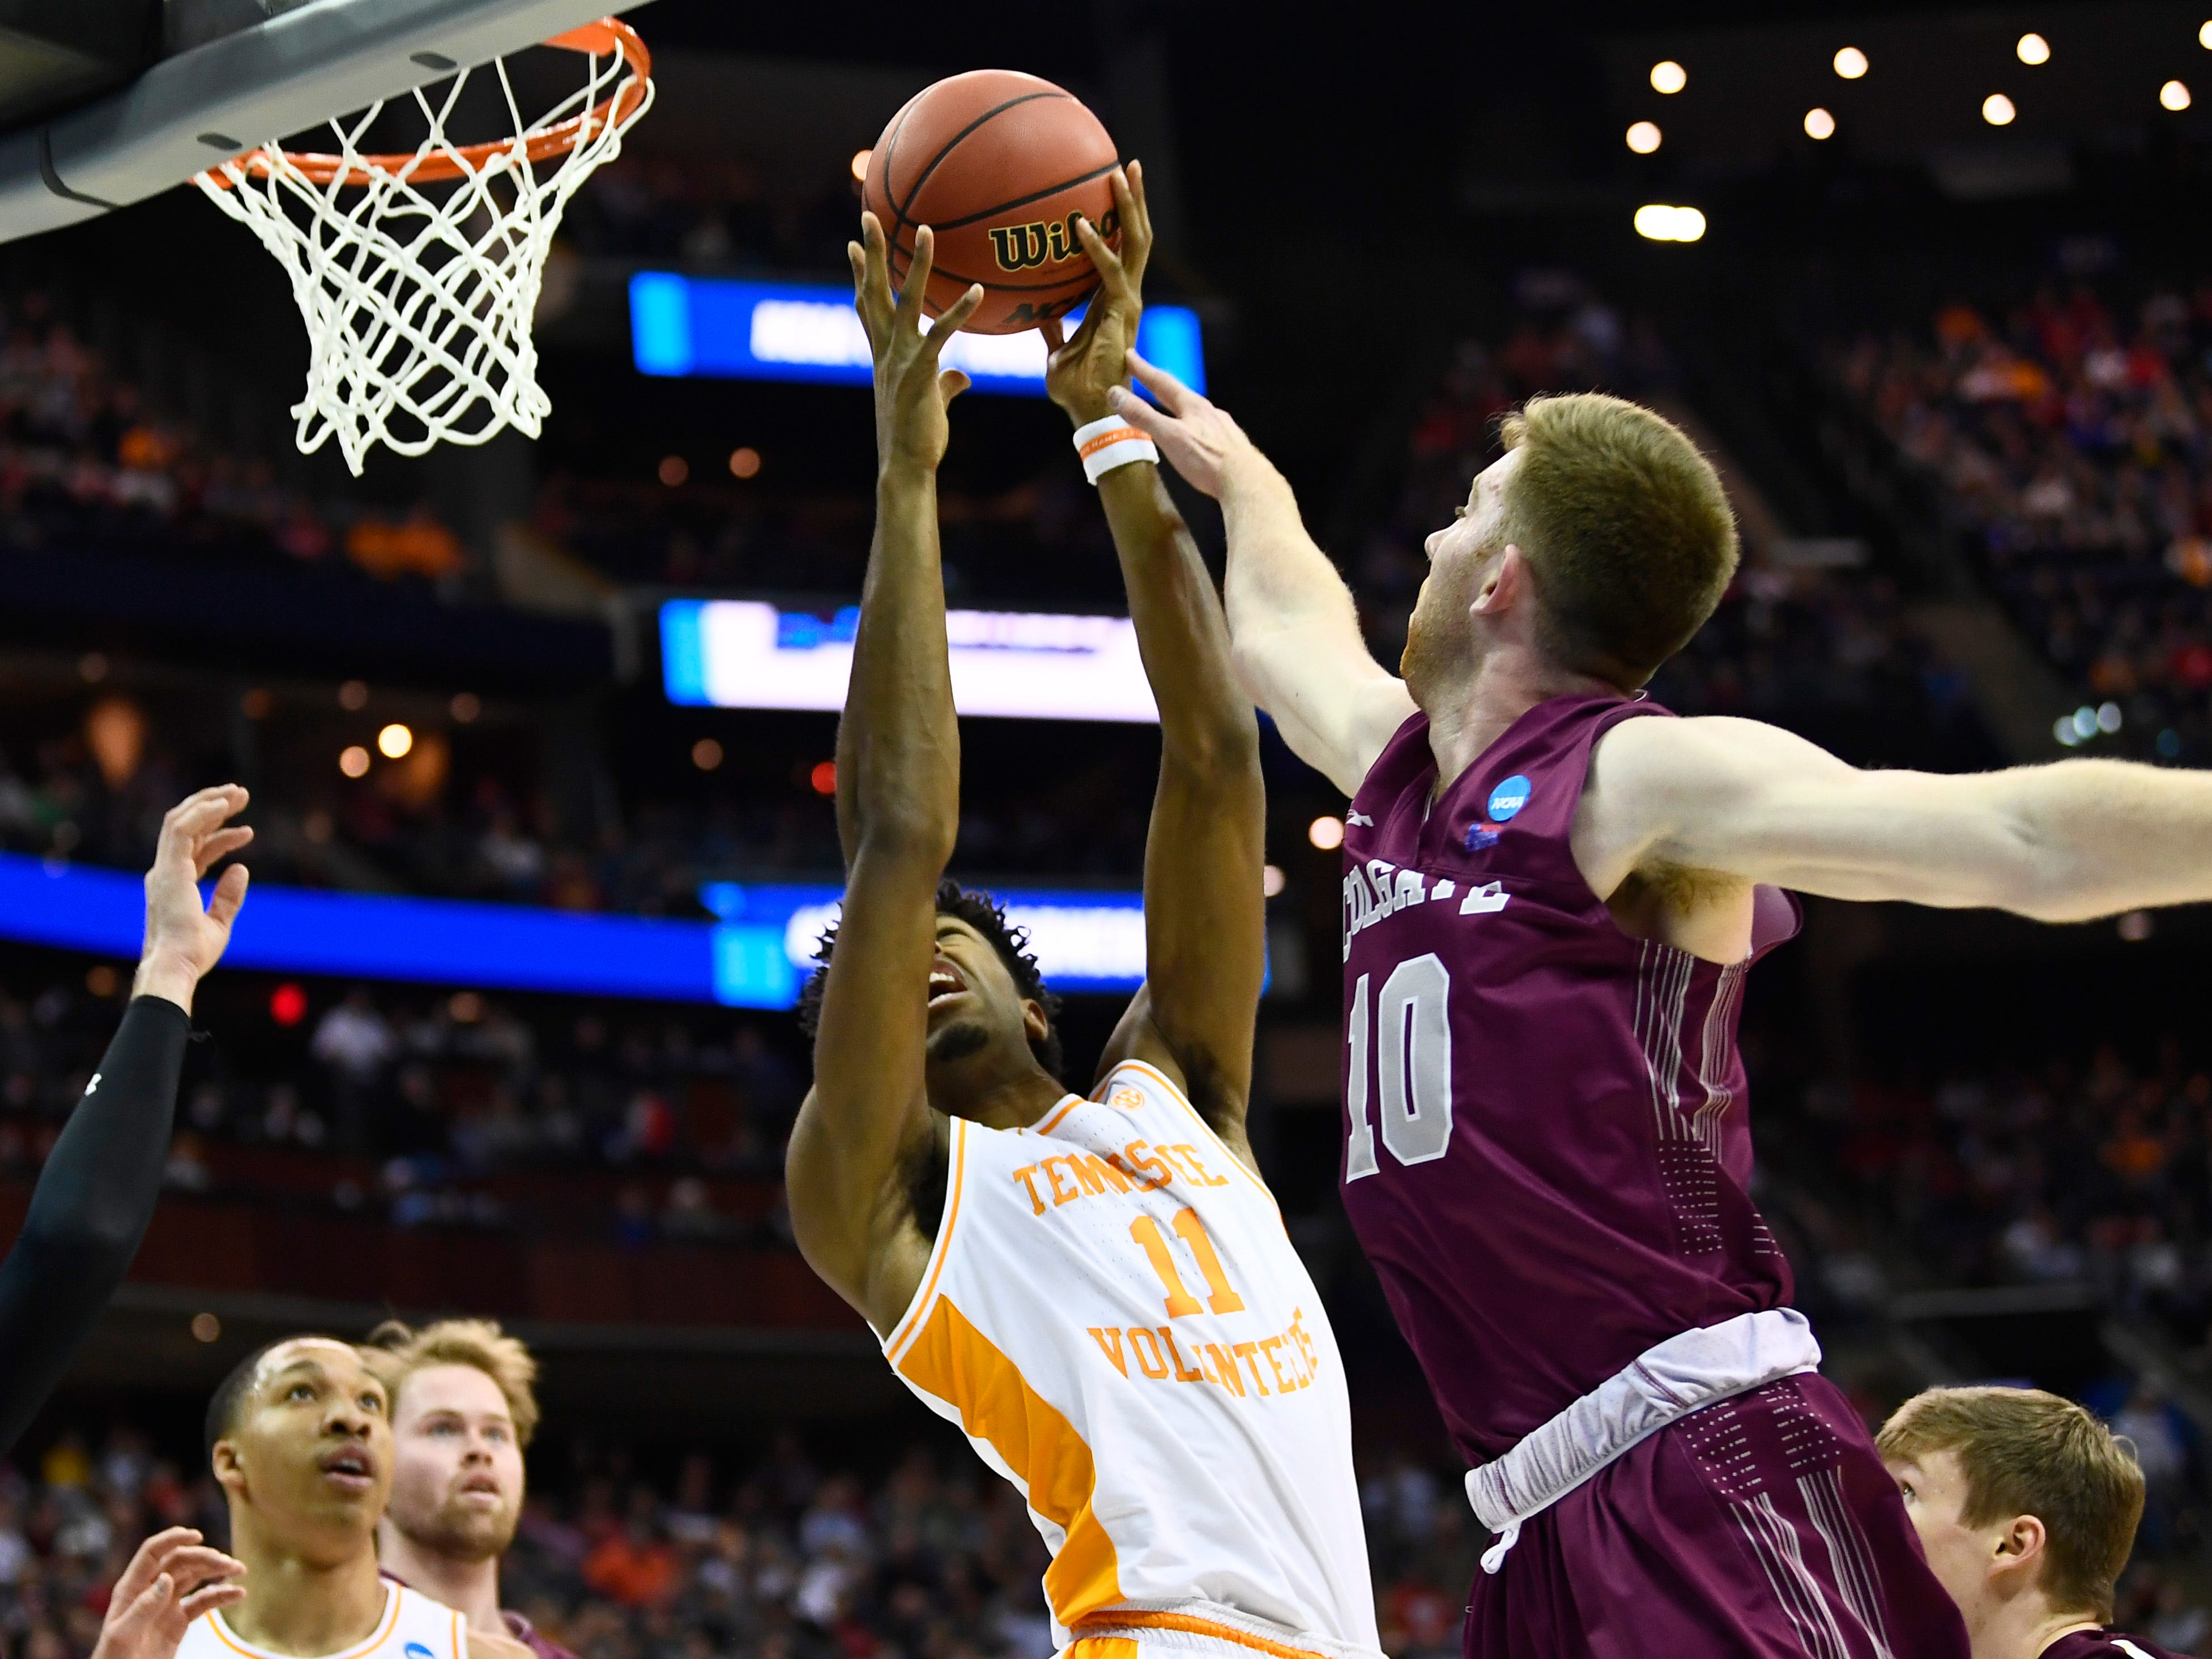 Tennessee Vols need Kyle Alexander to be big in Sweet 16 chase after he missed NCAA upset last year